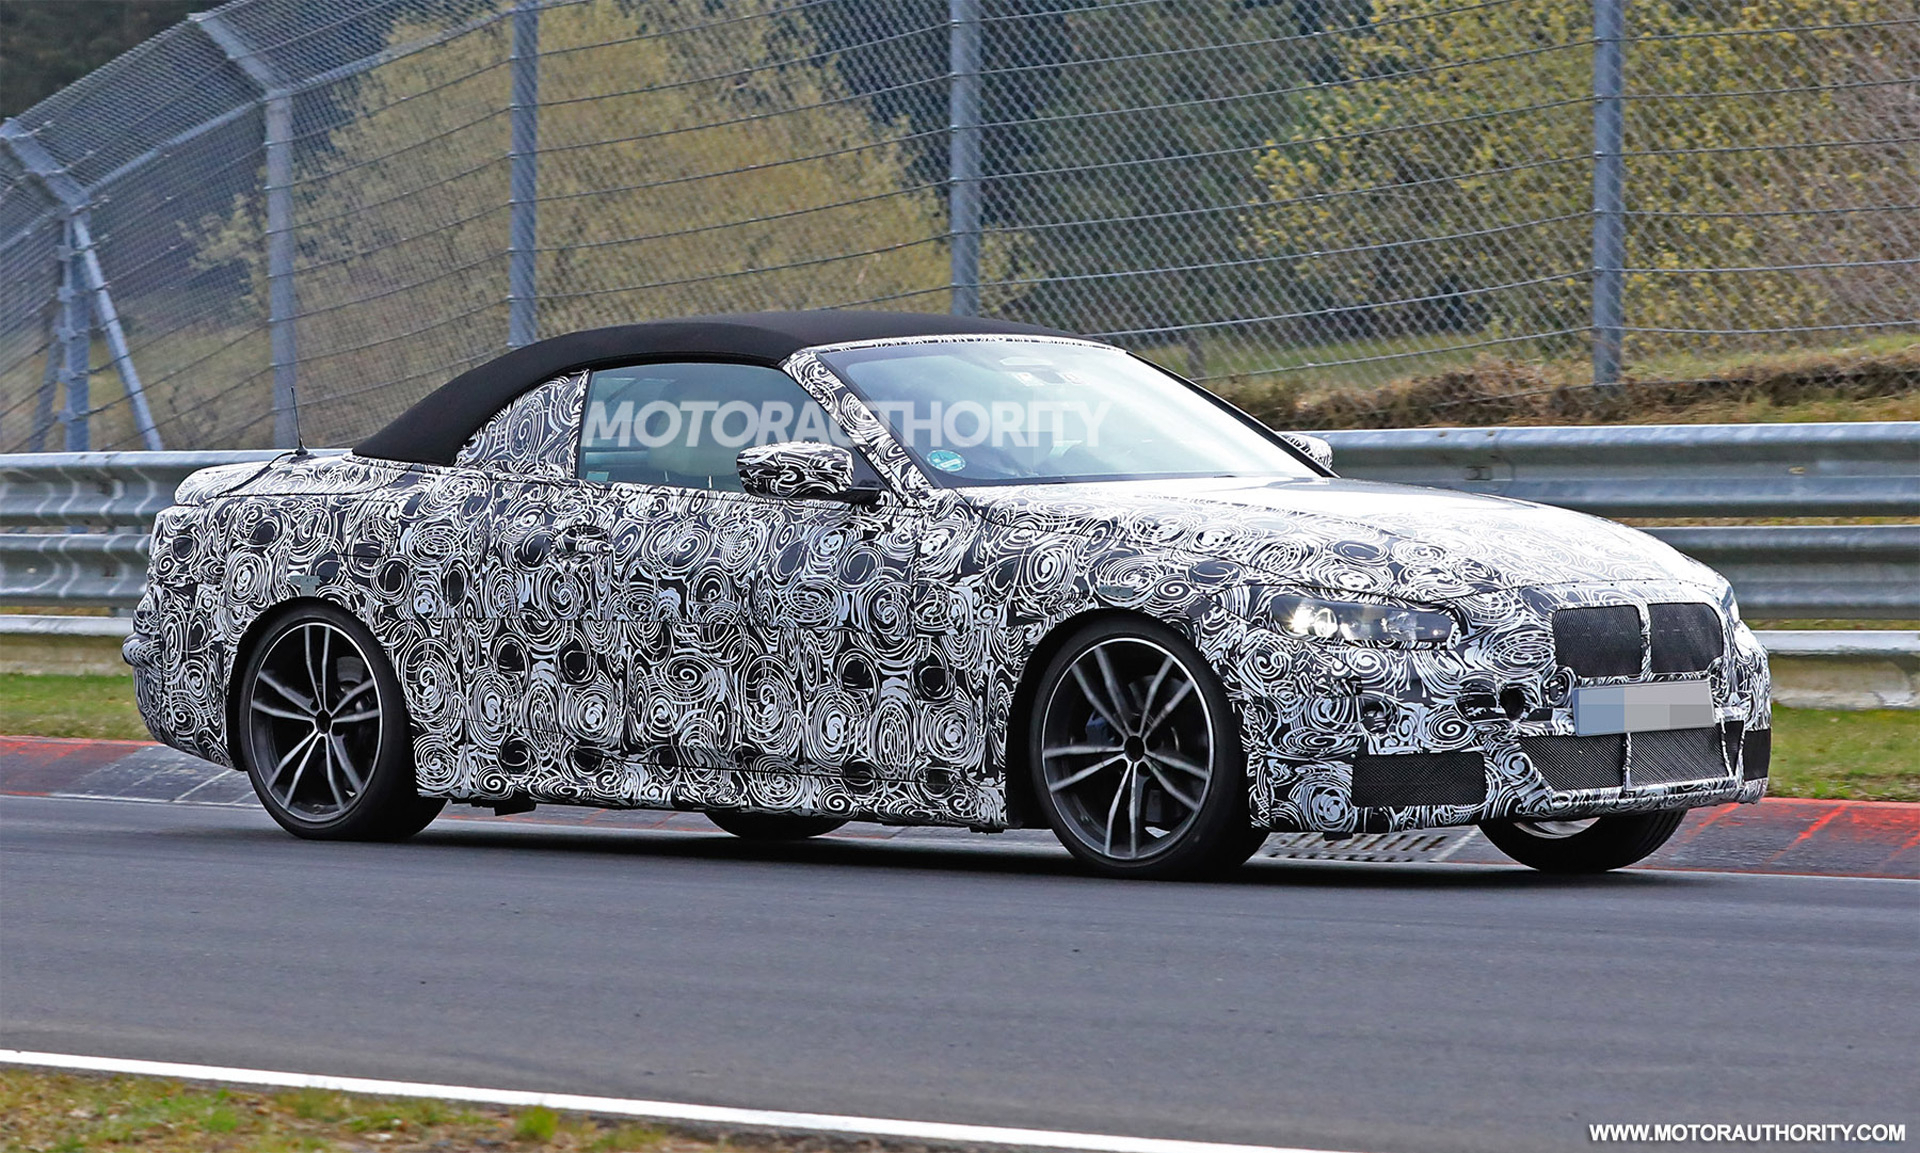 2021 Bmw M240I Convertible, Automatic Engine, Redesign, Price